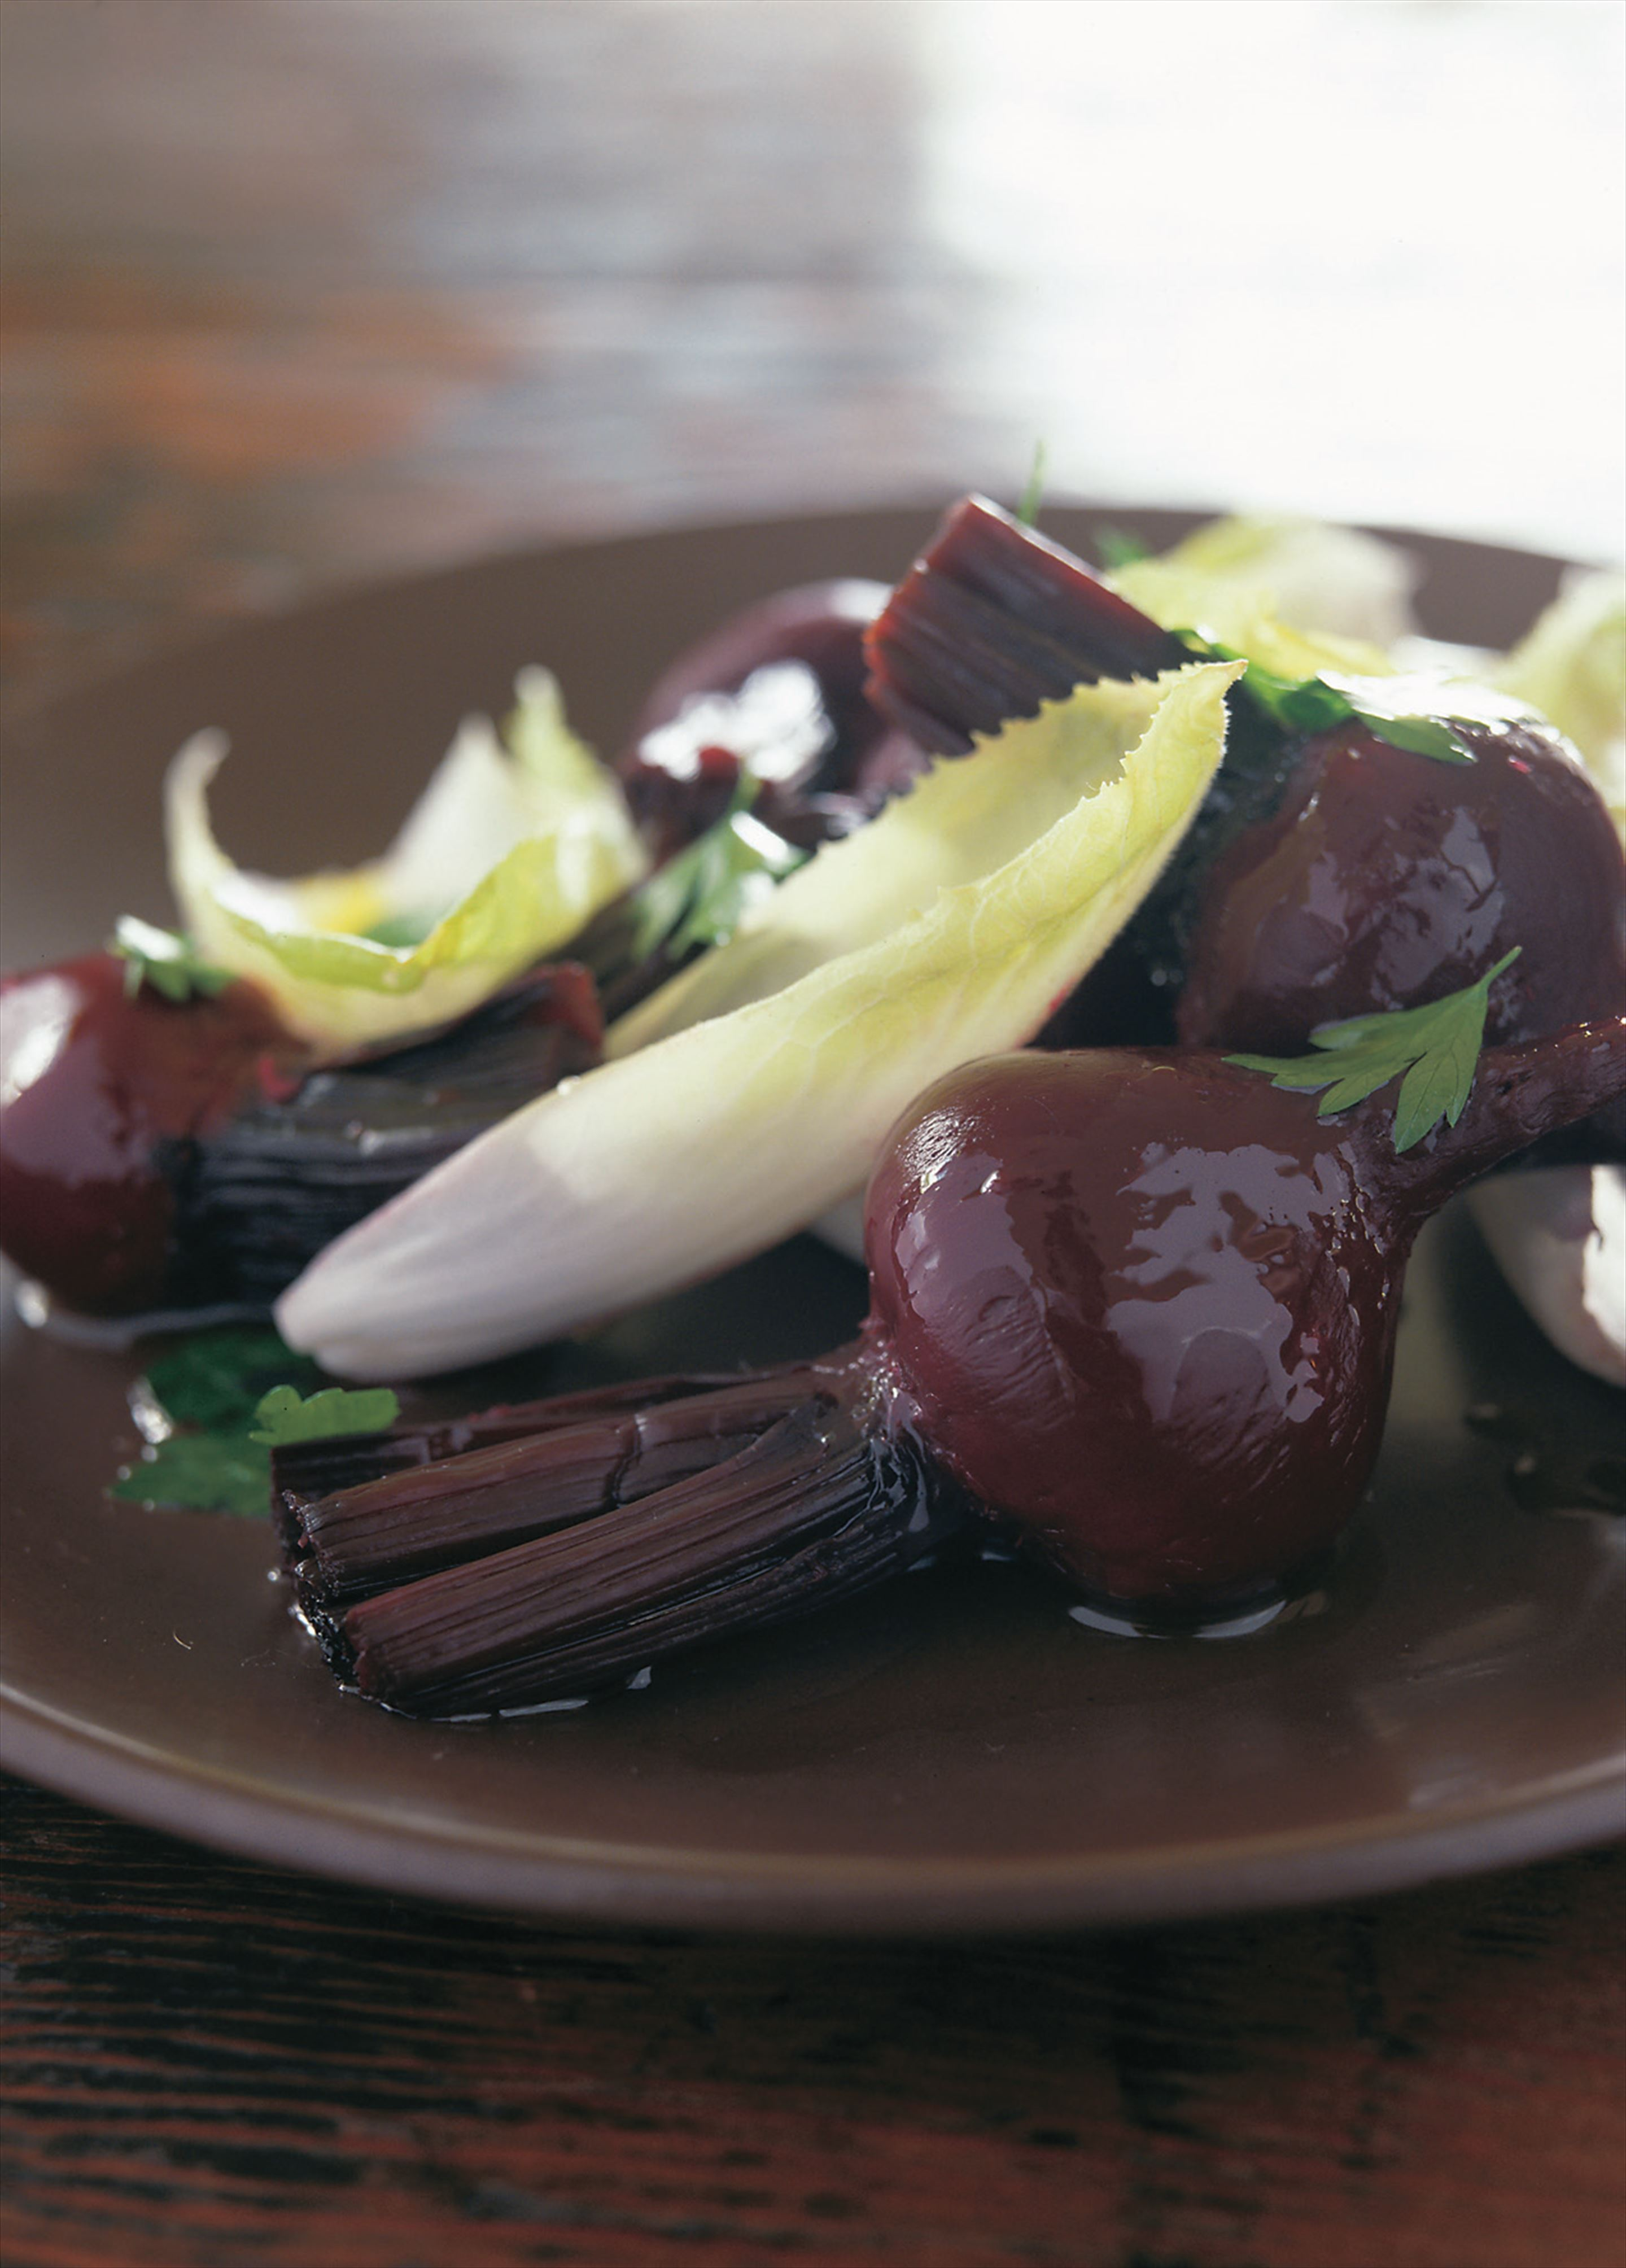 Beetroot and endive salad